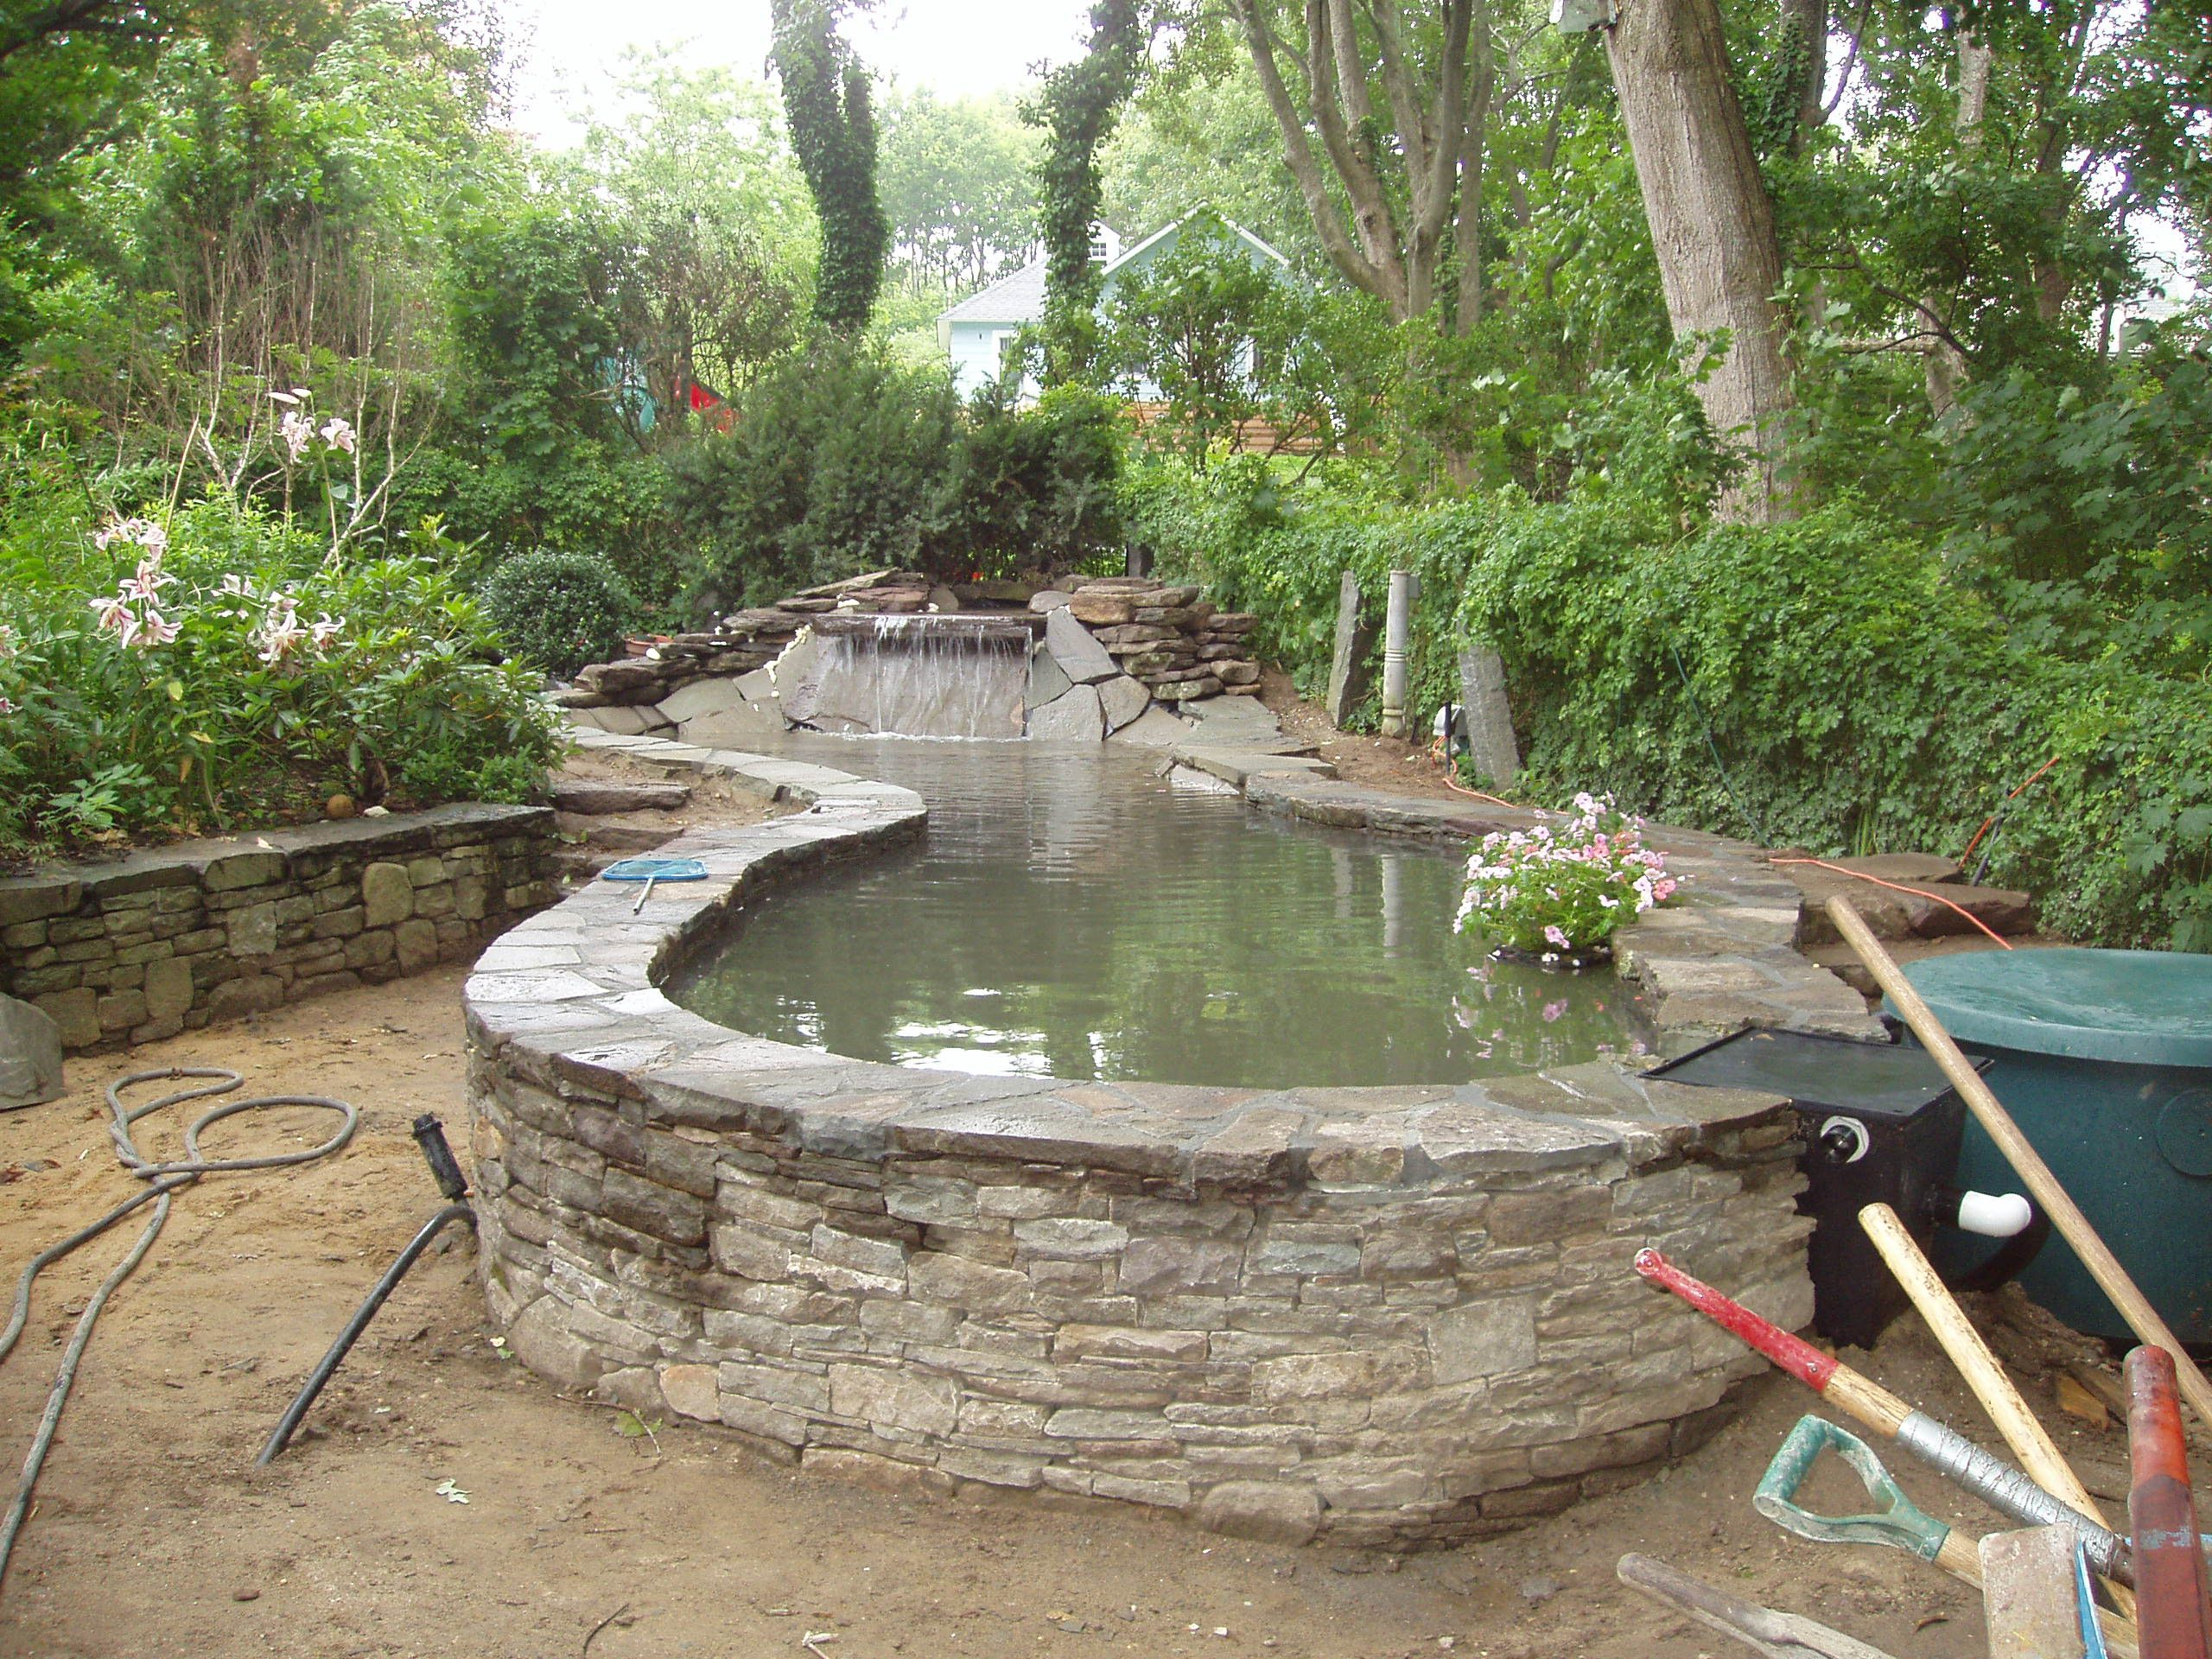 Fish pond pictures 95740 wallpapers things to make for Above ground koi pond design ideas